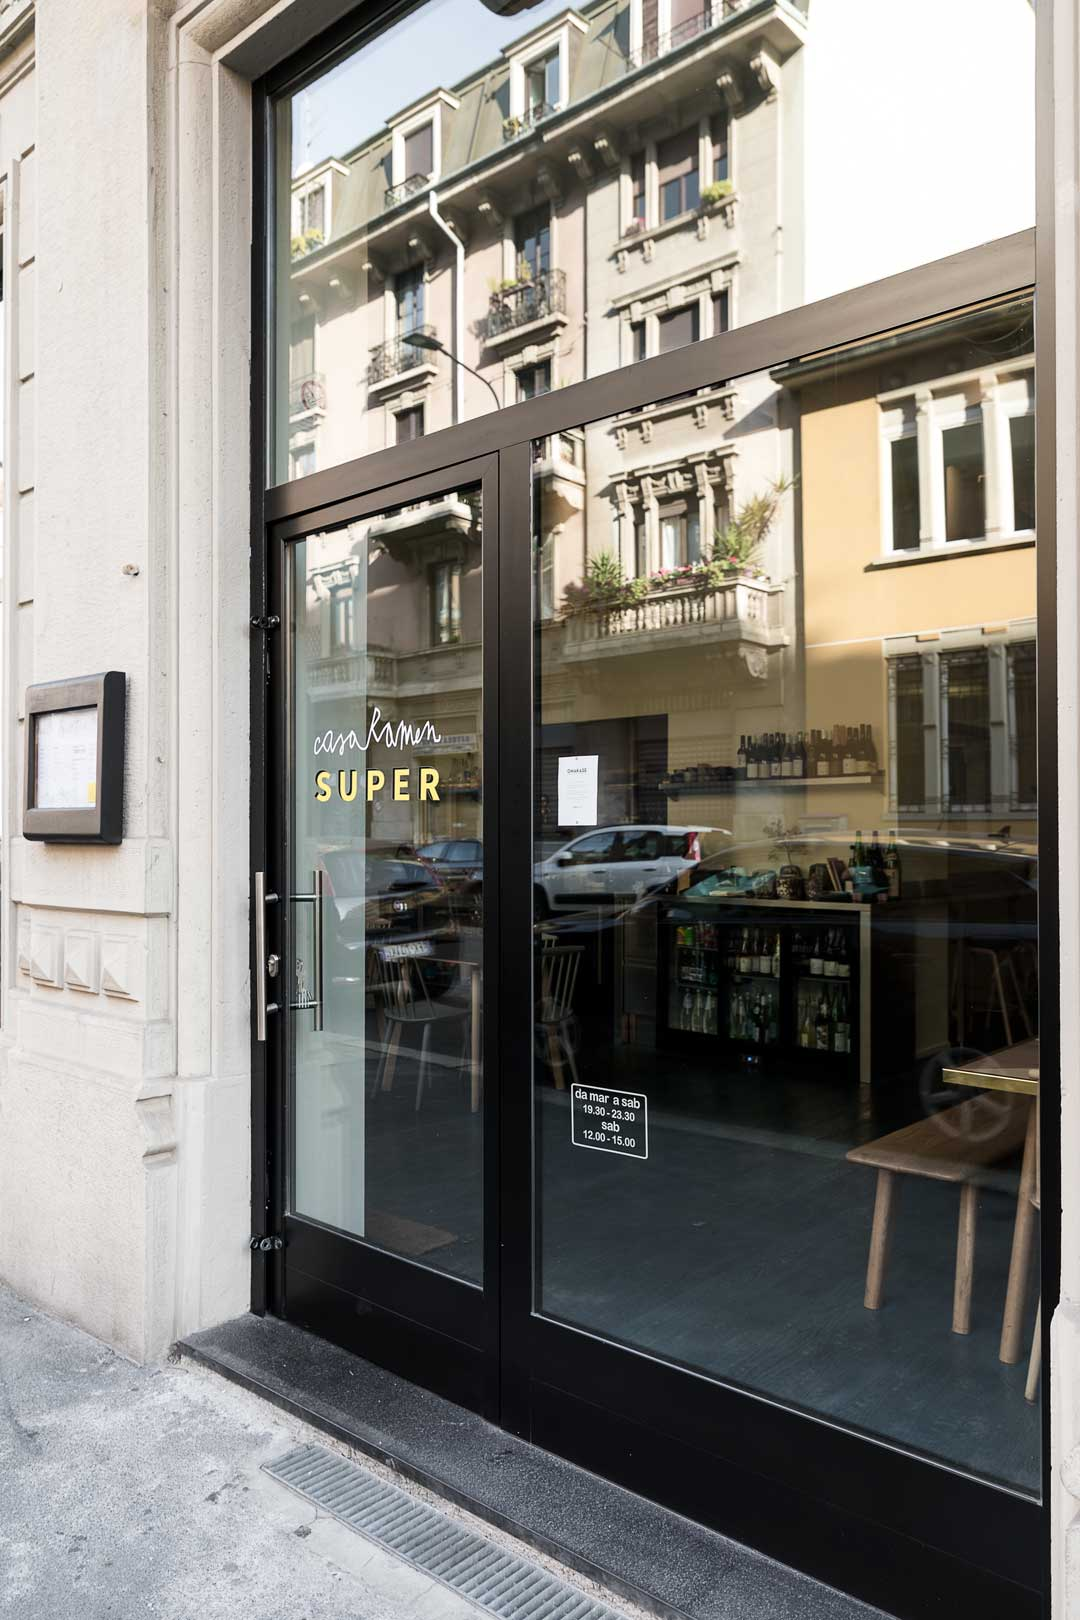 Casa Ramen Super  Flawless Milano  The Lifestyle Guide